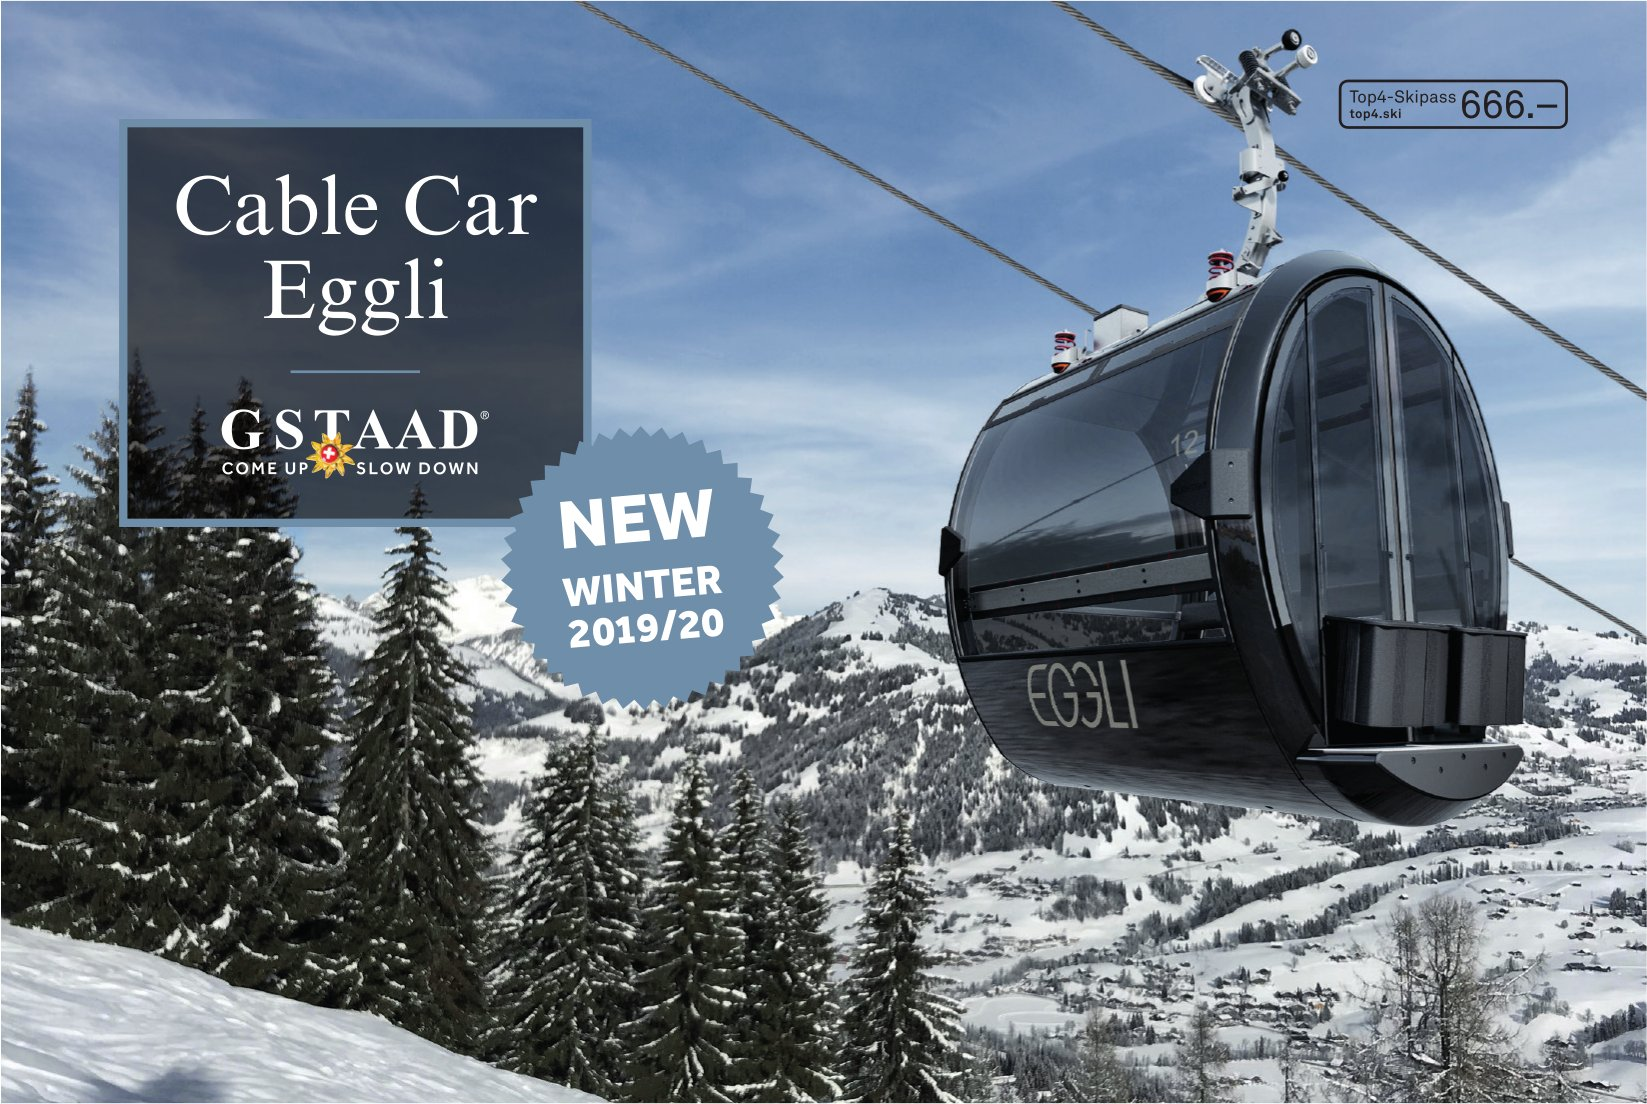 Cable Car Eggli, GSTAAD - NEW WINTER 2019/20